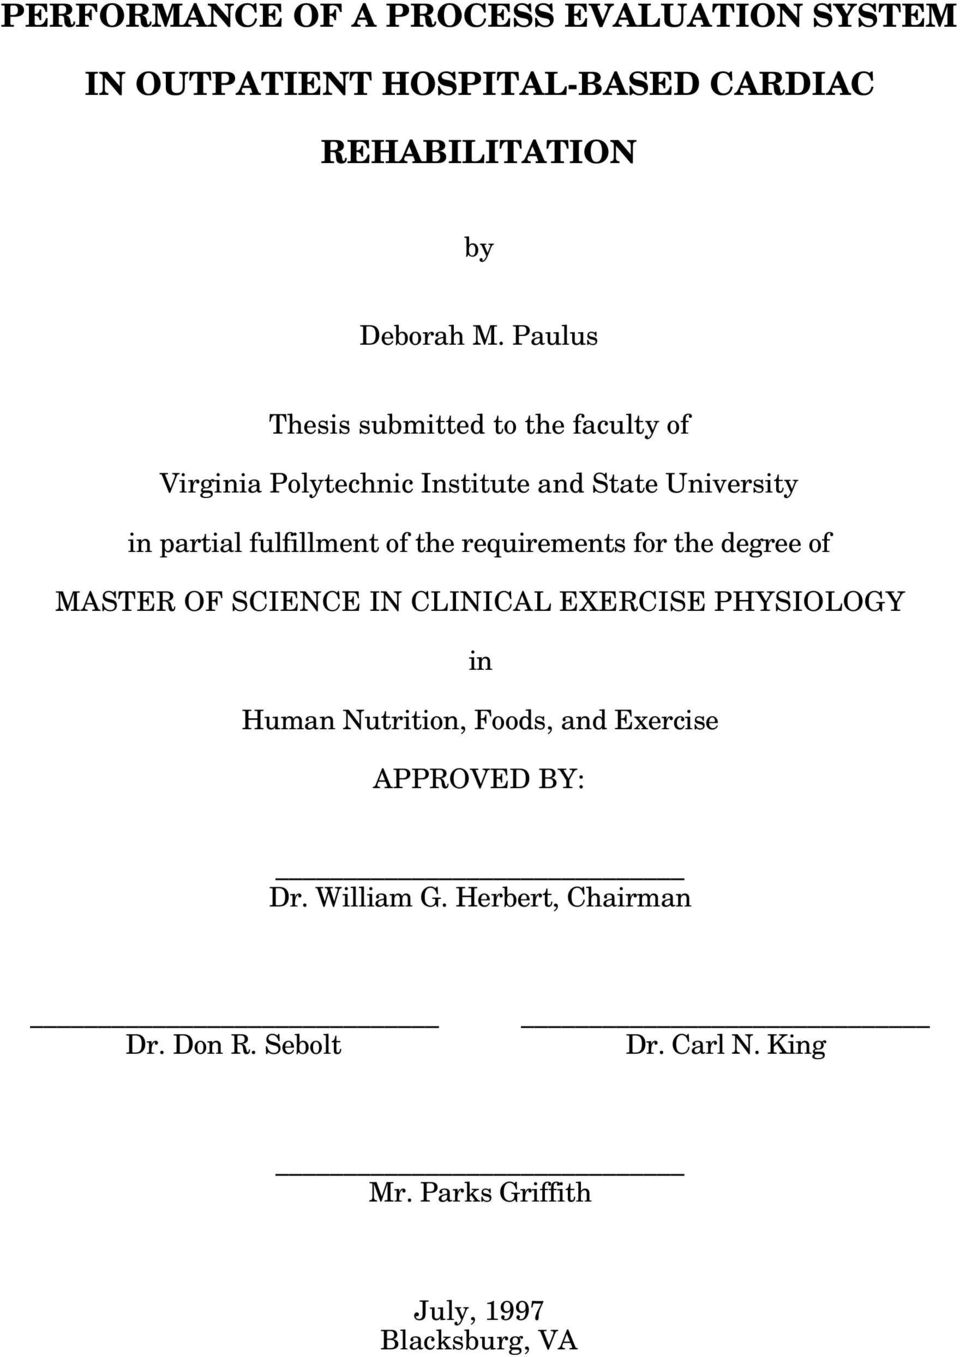 the requirements for the degree of MASTER OF SCIENCE IN CLINICAL EXERCISE PHYSIOLOGY in Human Nutrition, Foods, and